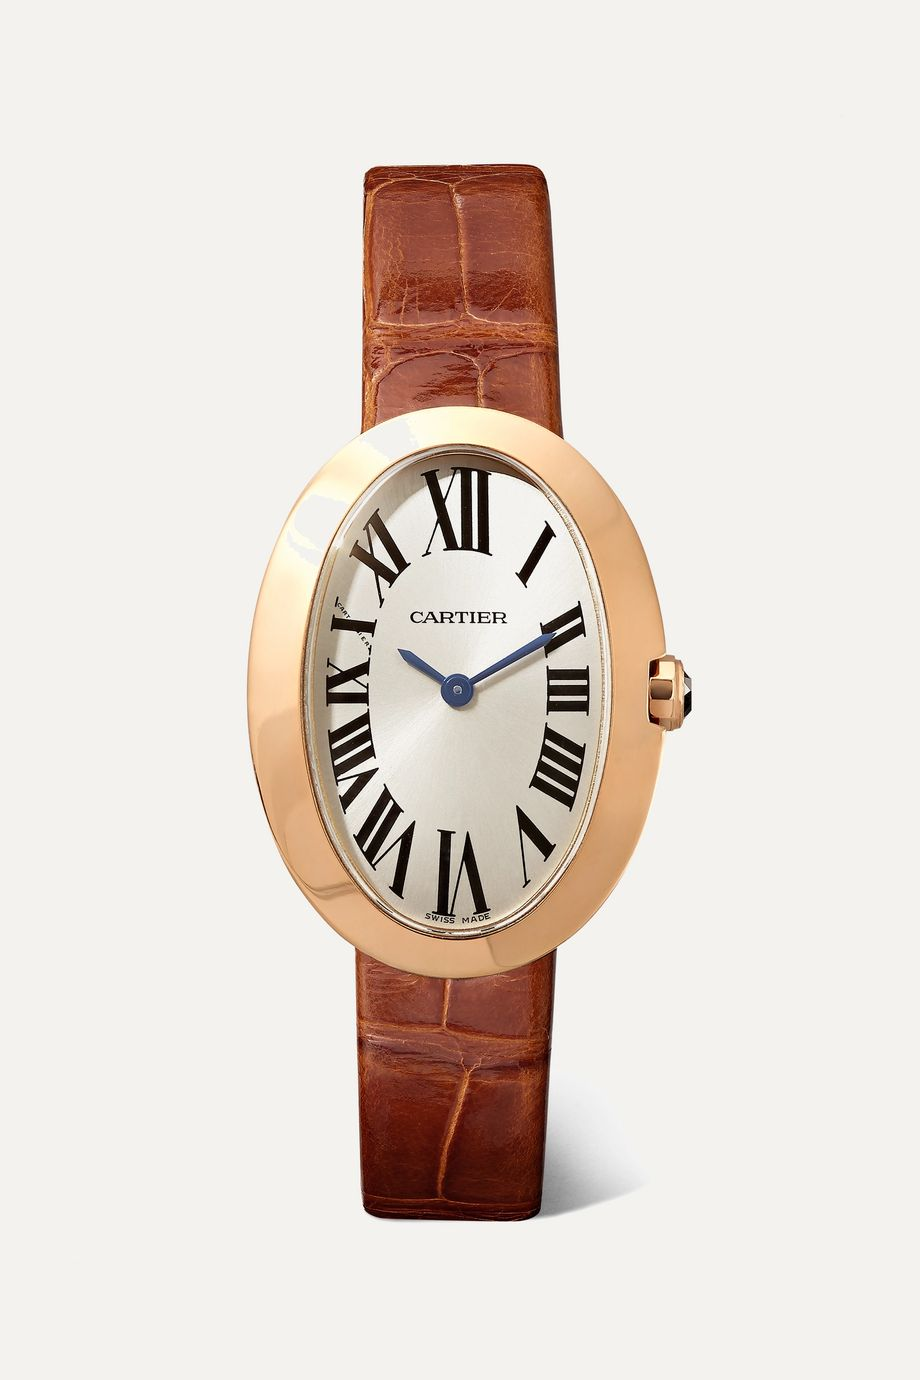 Cartier Baignoire 24.5mm small 18-karat pink gold and alligator watch